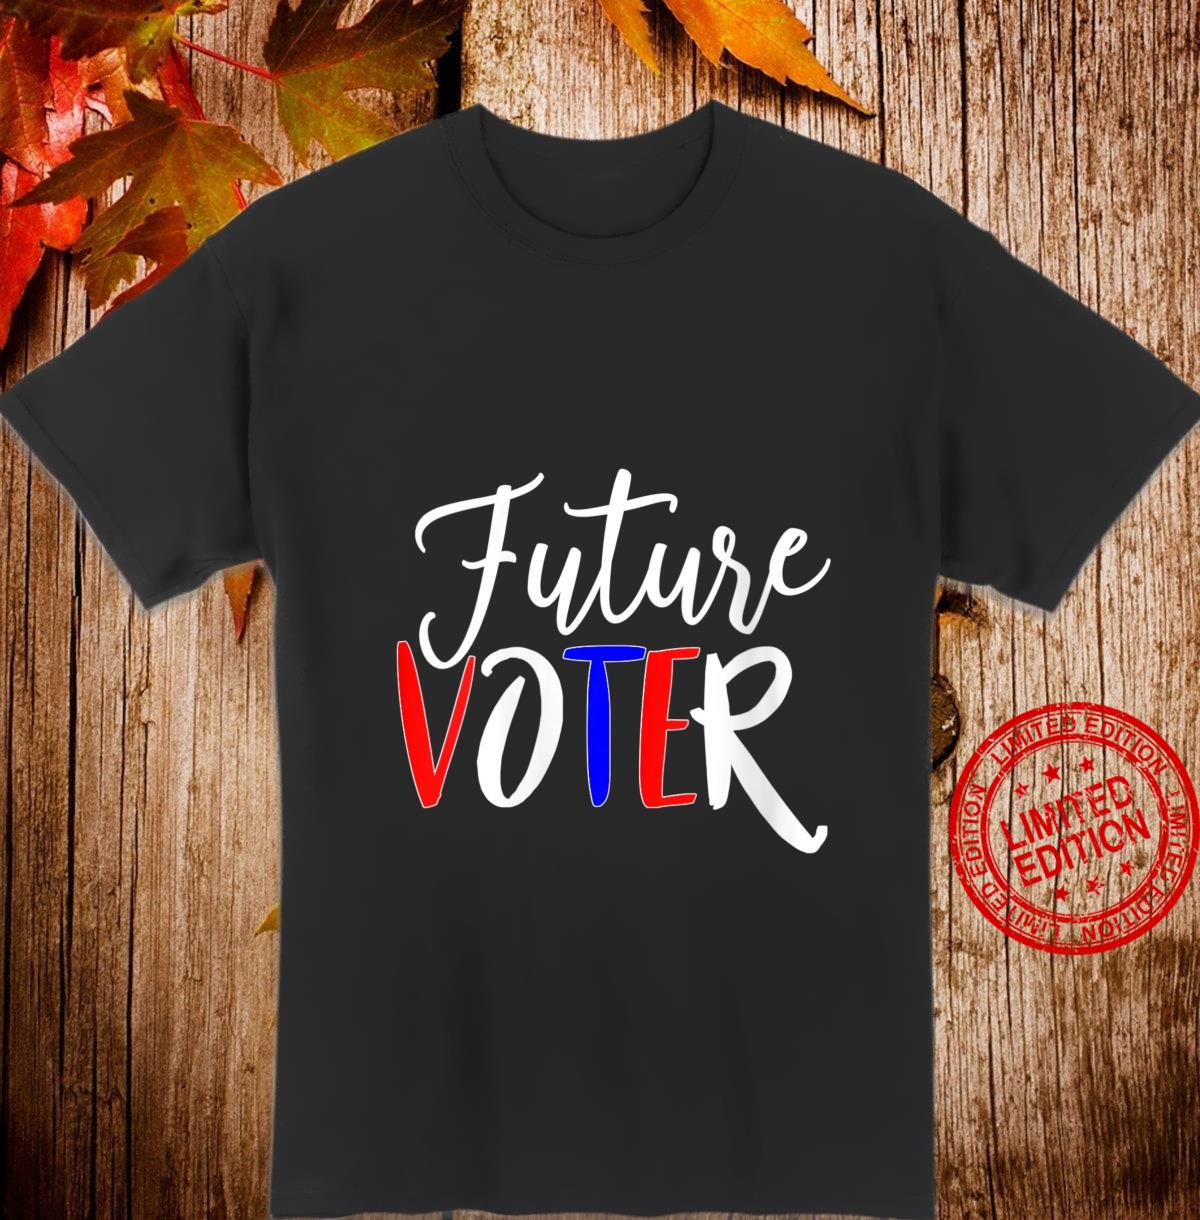 Womens Future Voter Shirt Politics Voting Elections Vote Shirt